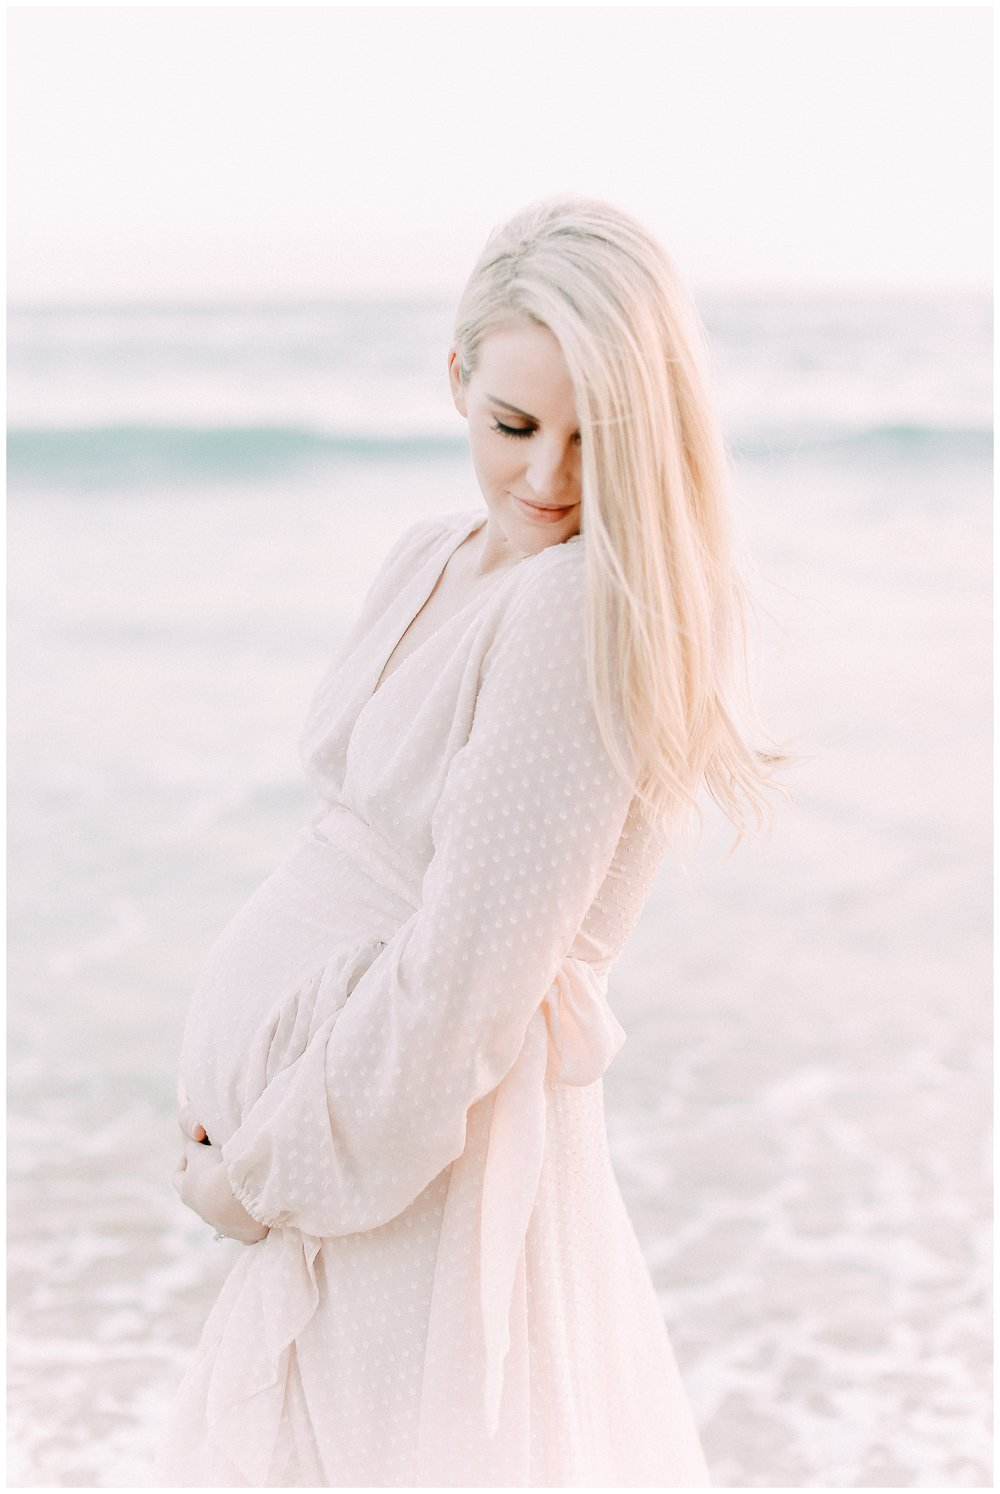 Little_Corona_Beach_Maternity_Session_Orange_county_family_photographer_cori_kleckner_photography_laguna_beach_family_session_0727.jpg